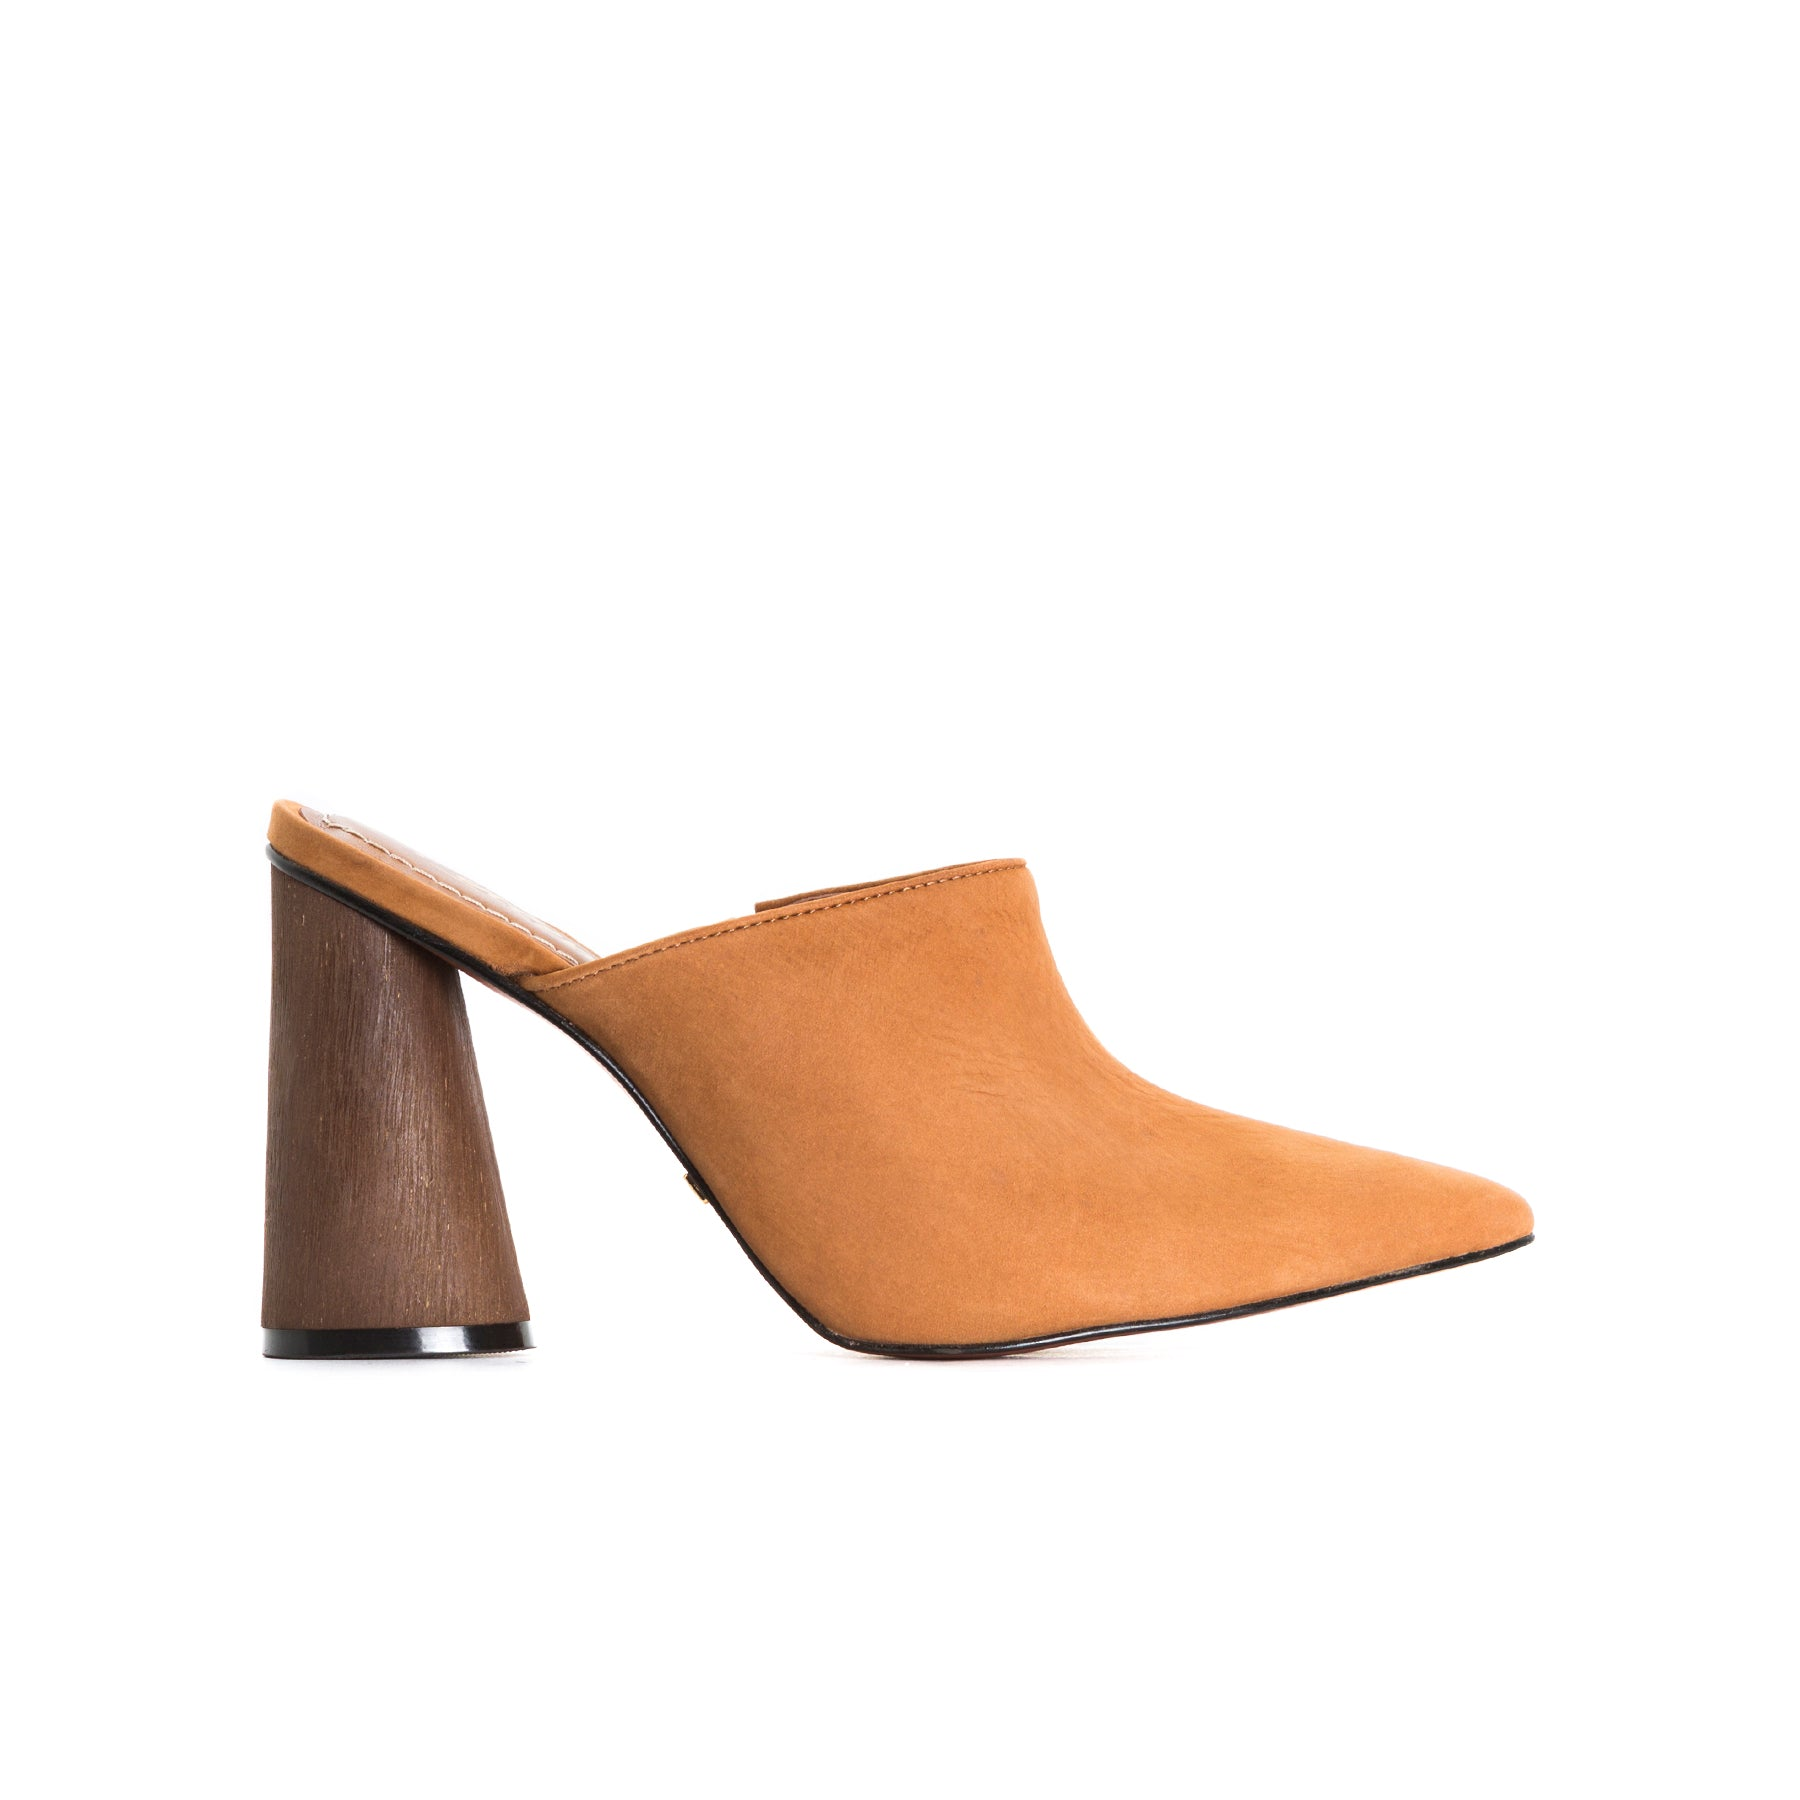 Cougar Tan Leather Mules